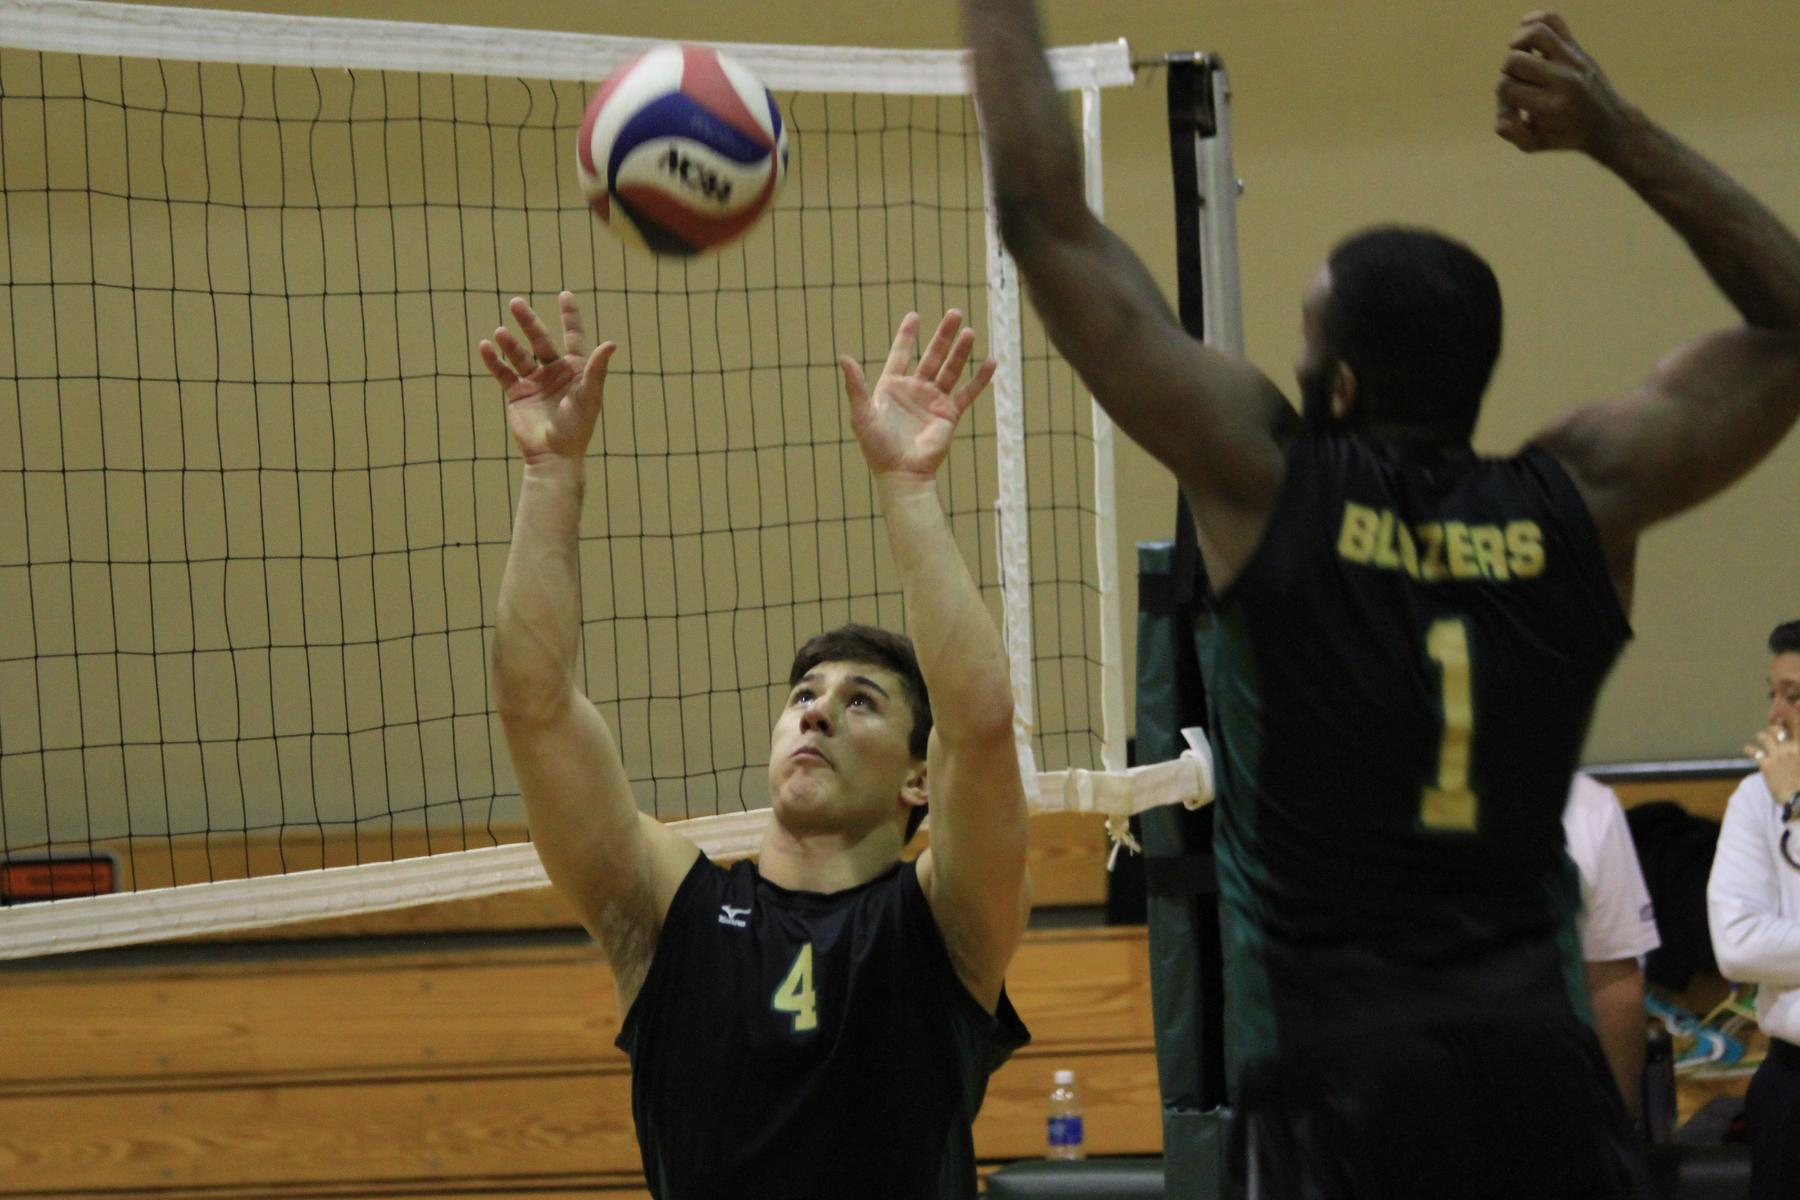 Men's Volleyball Blanks Southern Vermont On The Road